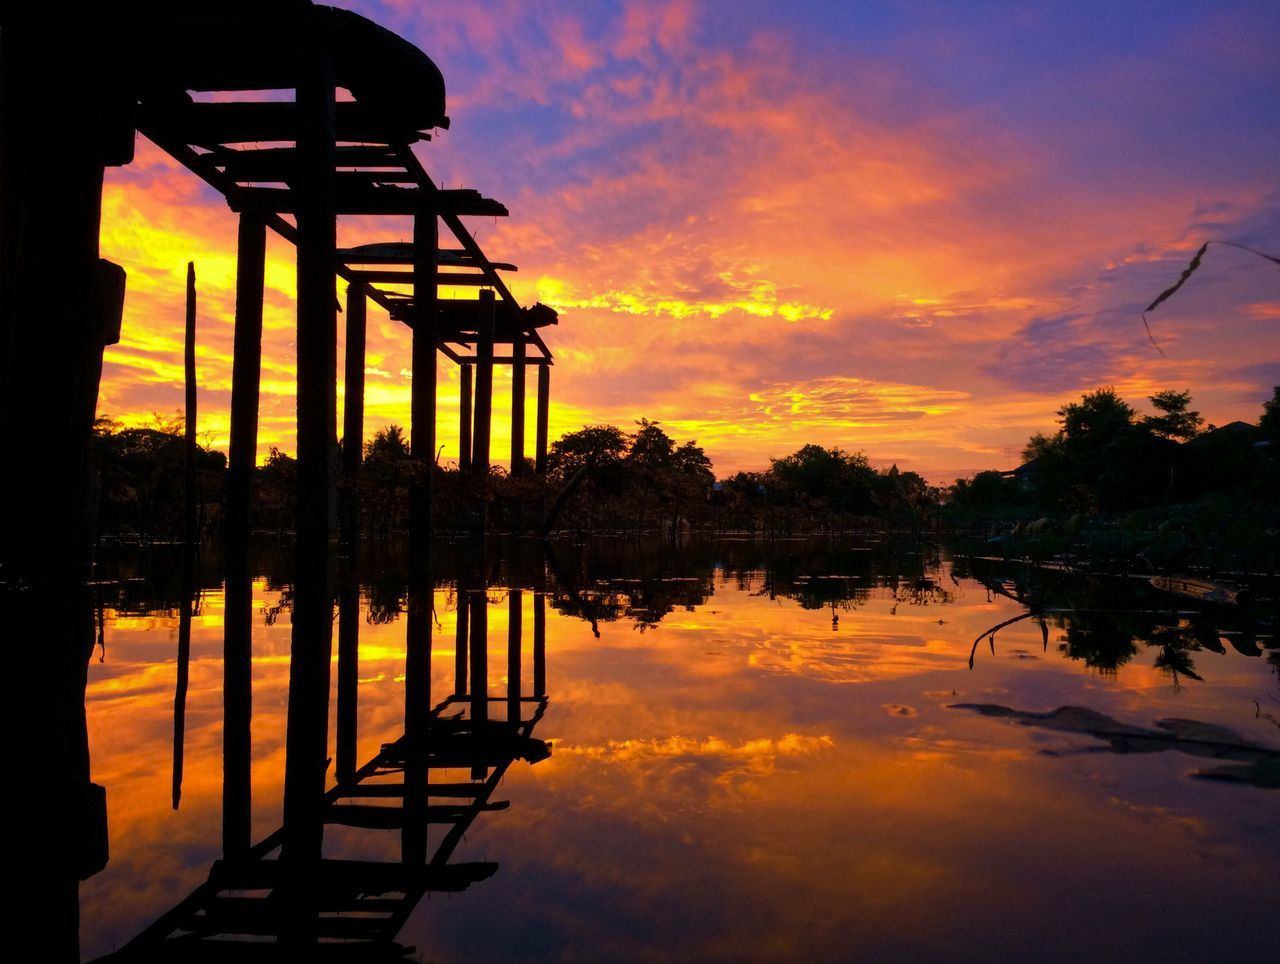 sunset, reflection, water, orange color, silhouette, scenics, lake, standing water, built structure, idyllic, sky, tree, cloud - sky, tranquil scene, beauty in nature, pier, cloud, tranquility, waterfront, dramatic sky, majestic, remote, red, outdoors, nature, calm, non-urban scene, vibrant color, architectural column, romantic sky, atmospheric mood